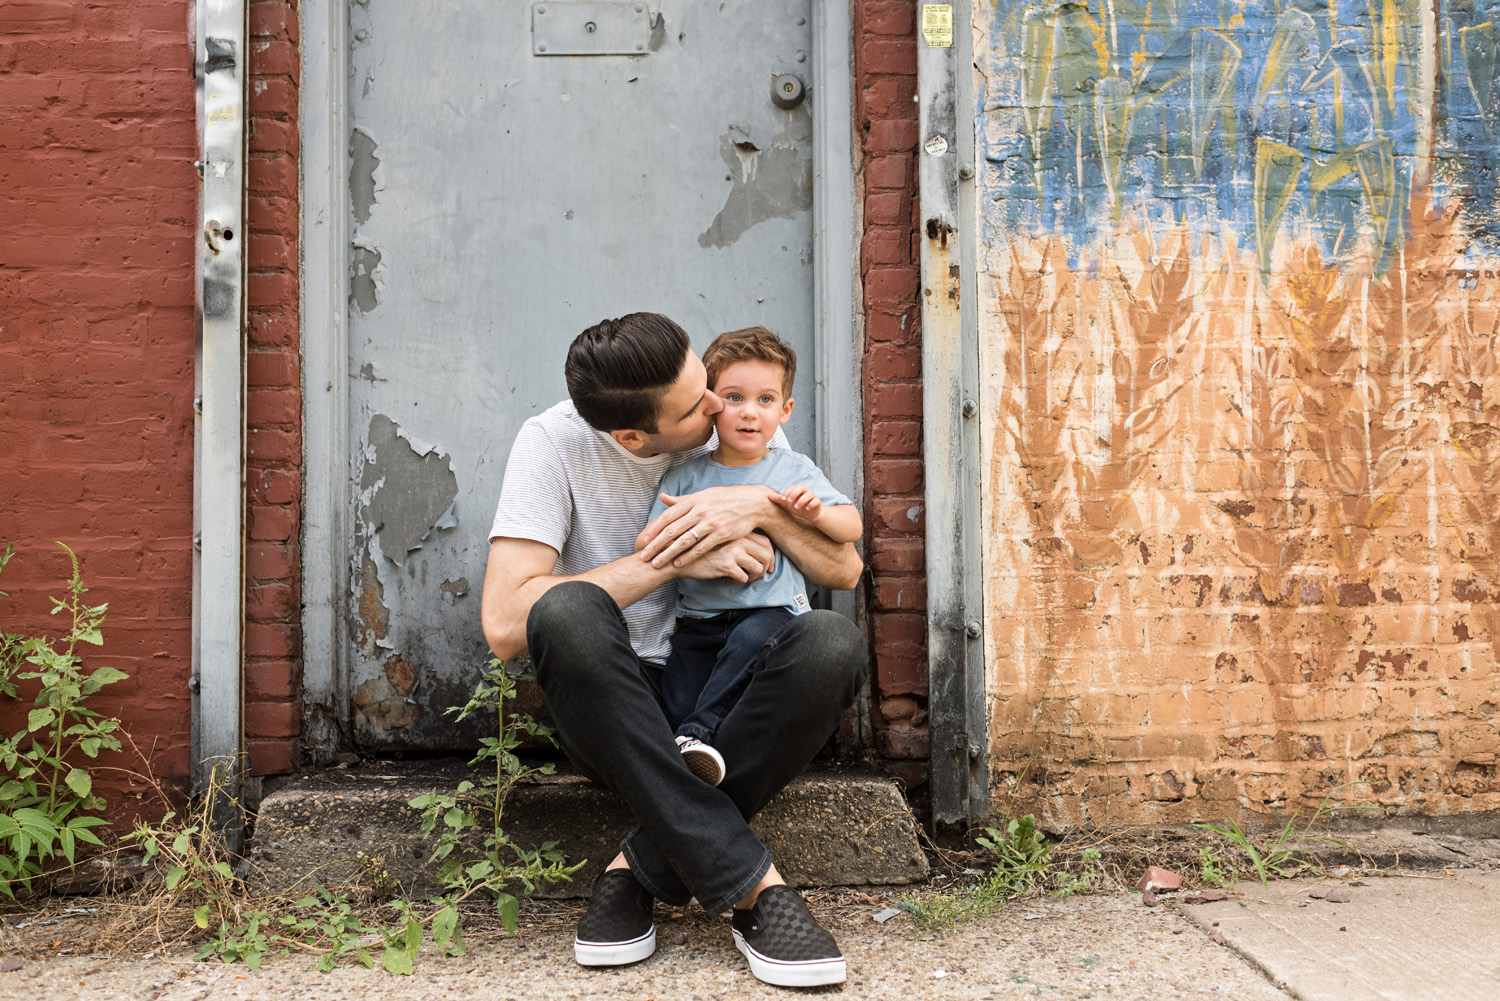 Red Hook Brooklyn Family Photographer_20190811_037.jpg